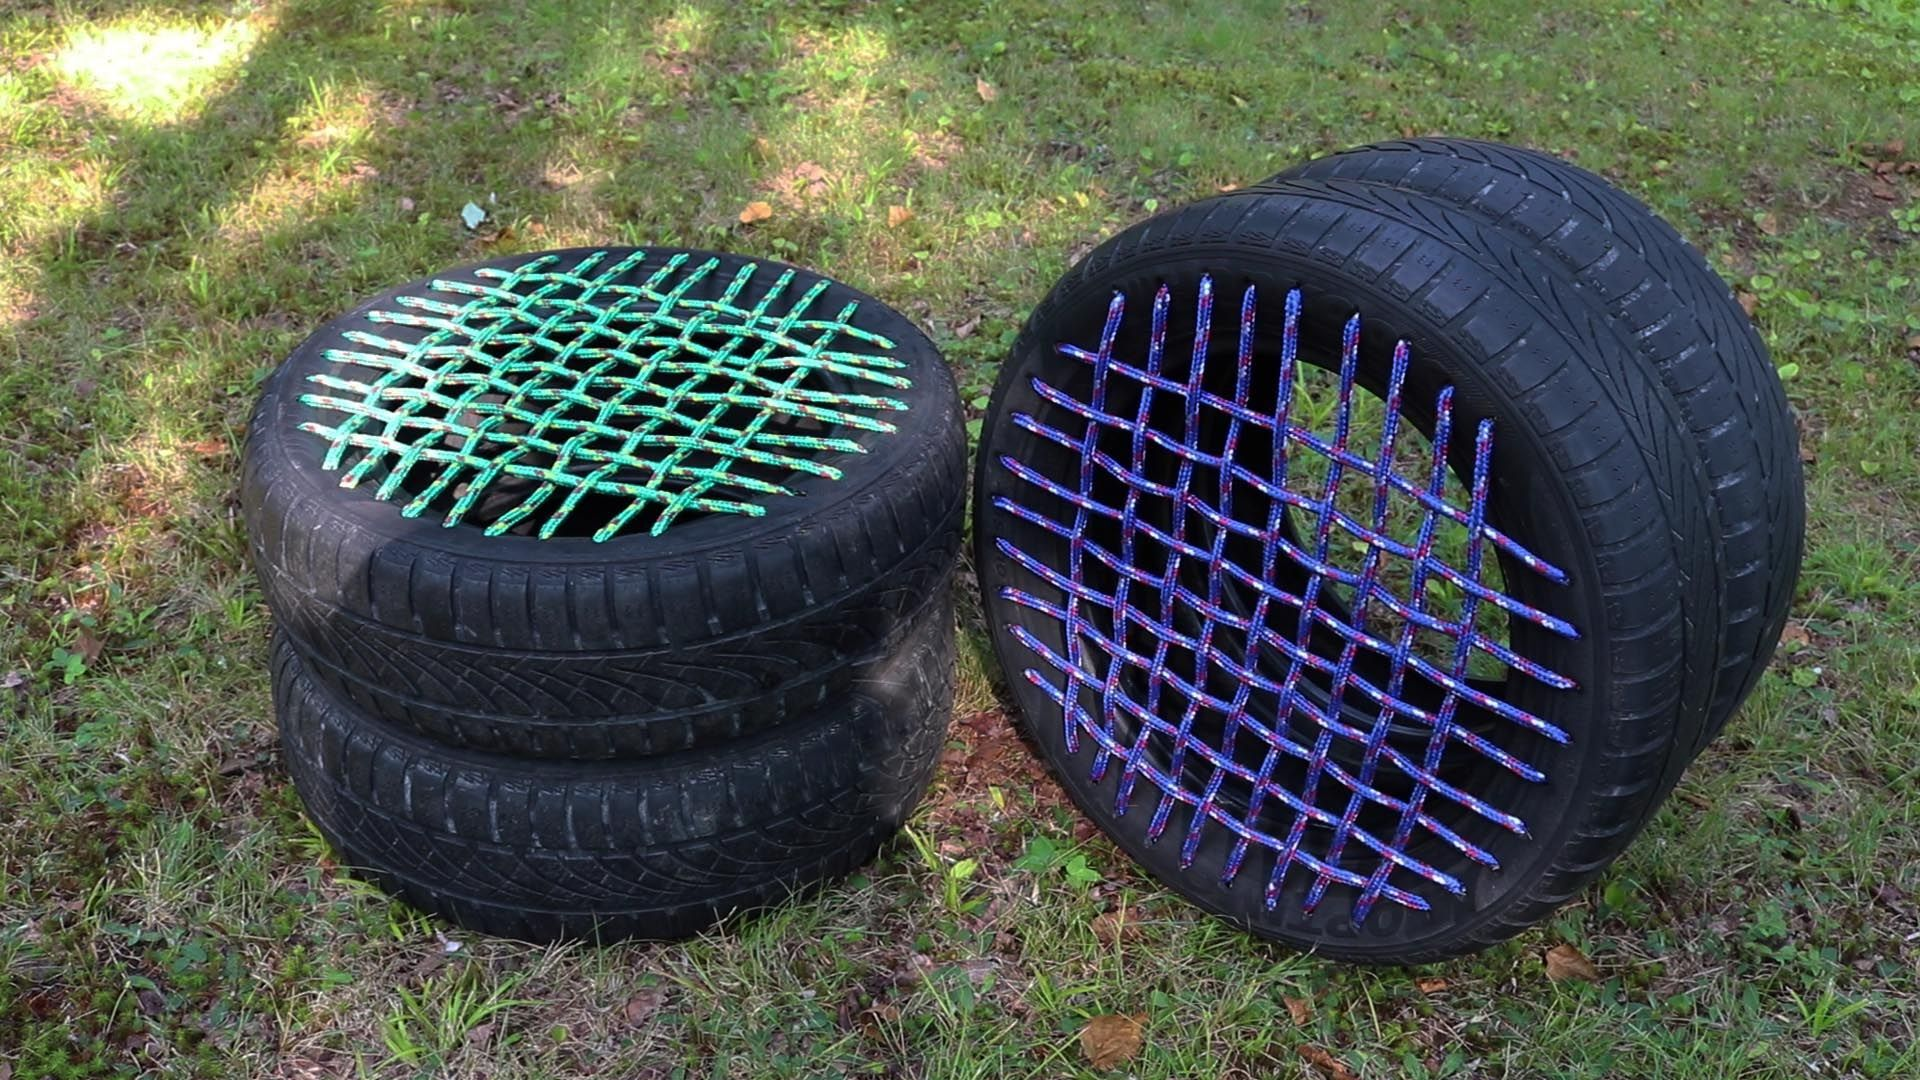 Repurpose Old Tires For Cheap Extra Seating With These Diy Tire Seats Cottage Life